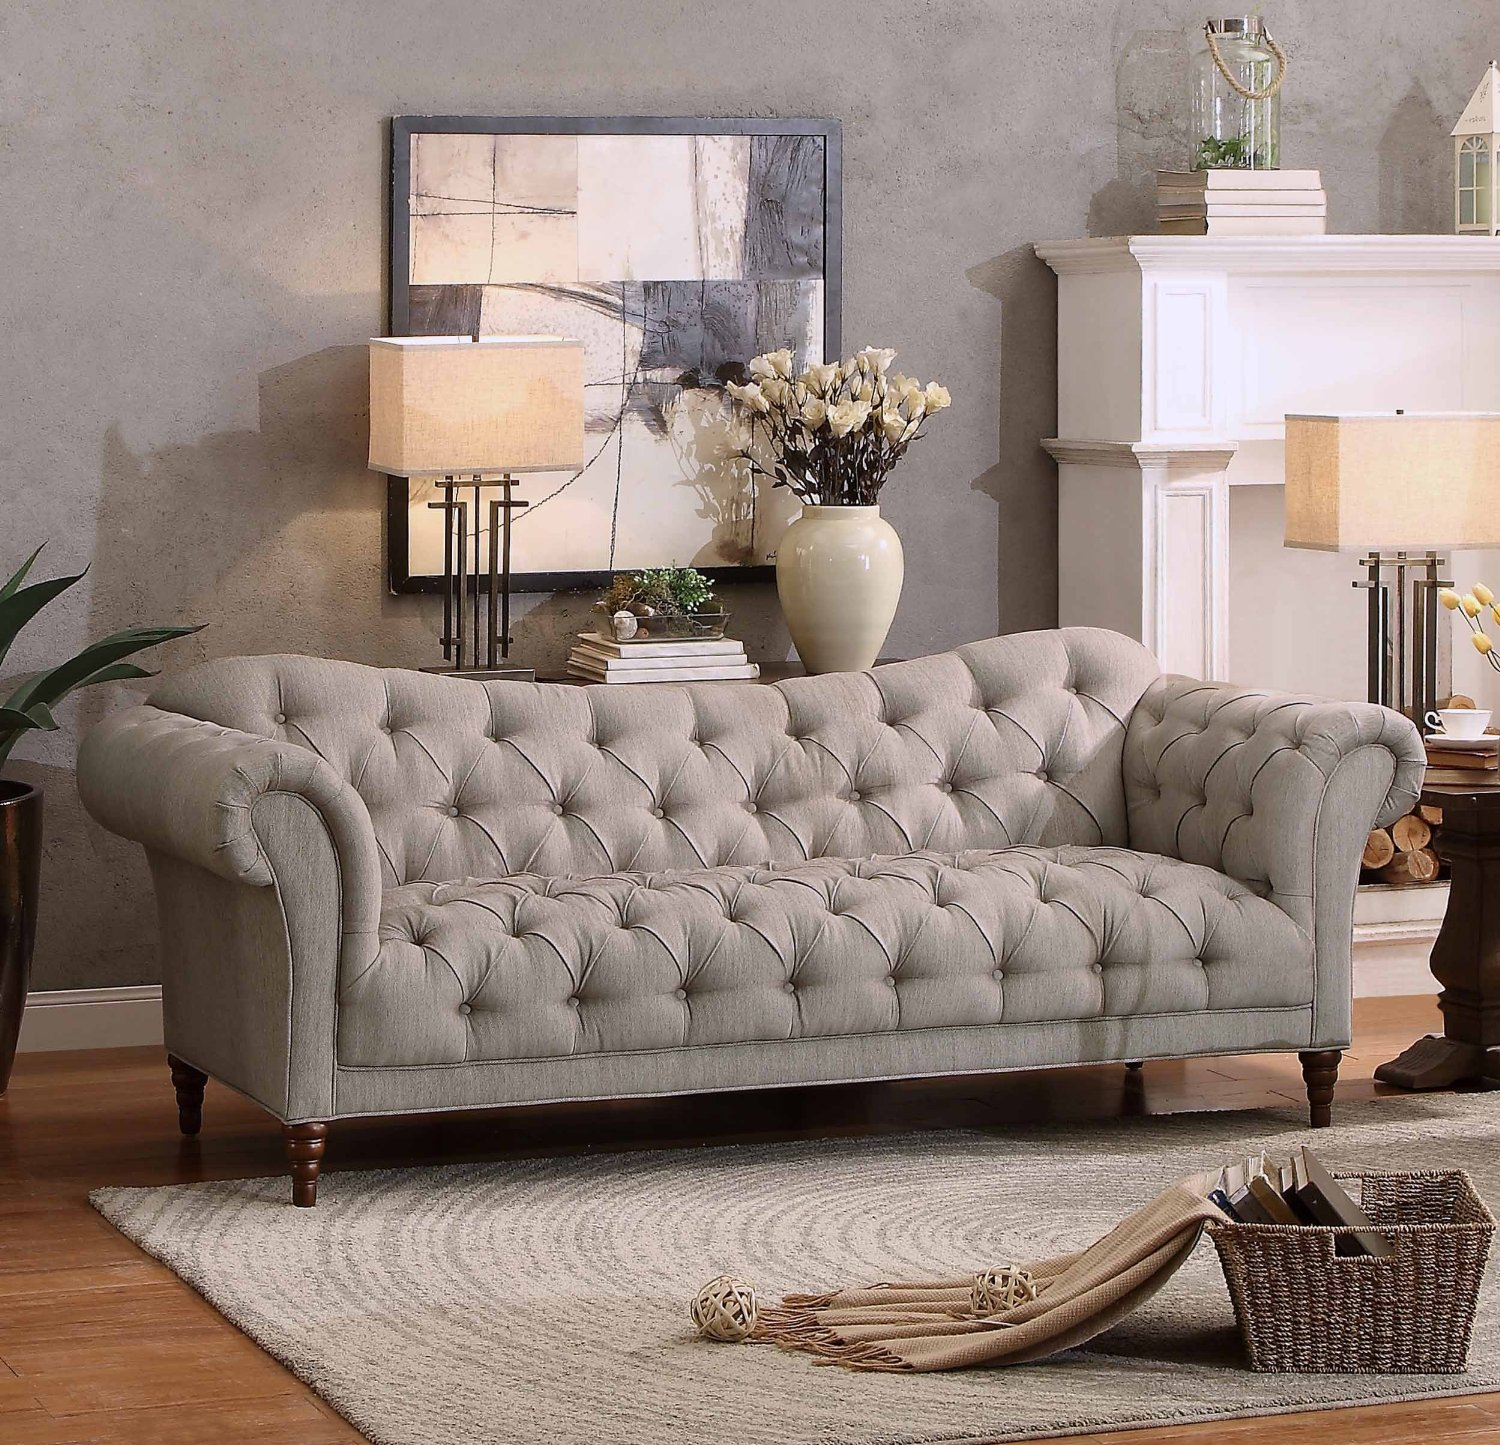 25 Best Chesterfield Sofas to Buy in 2018 Homelegance Chesterfield Style Love Seat